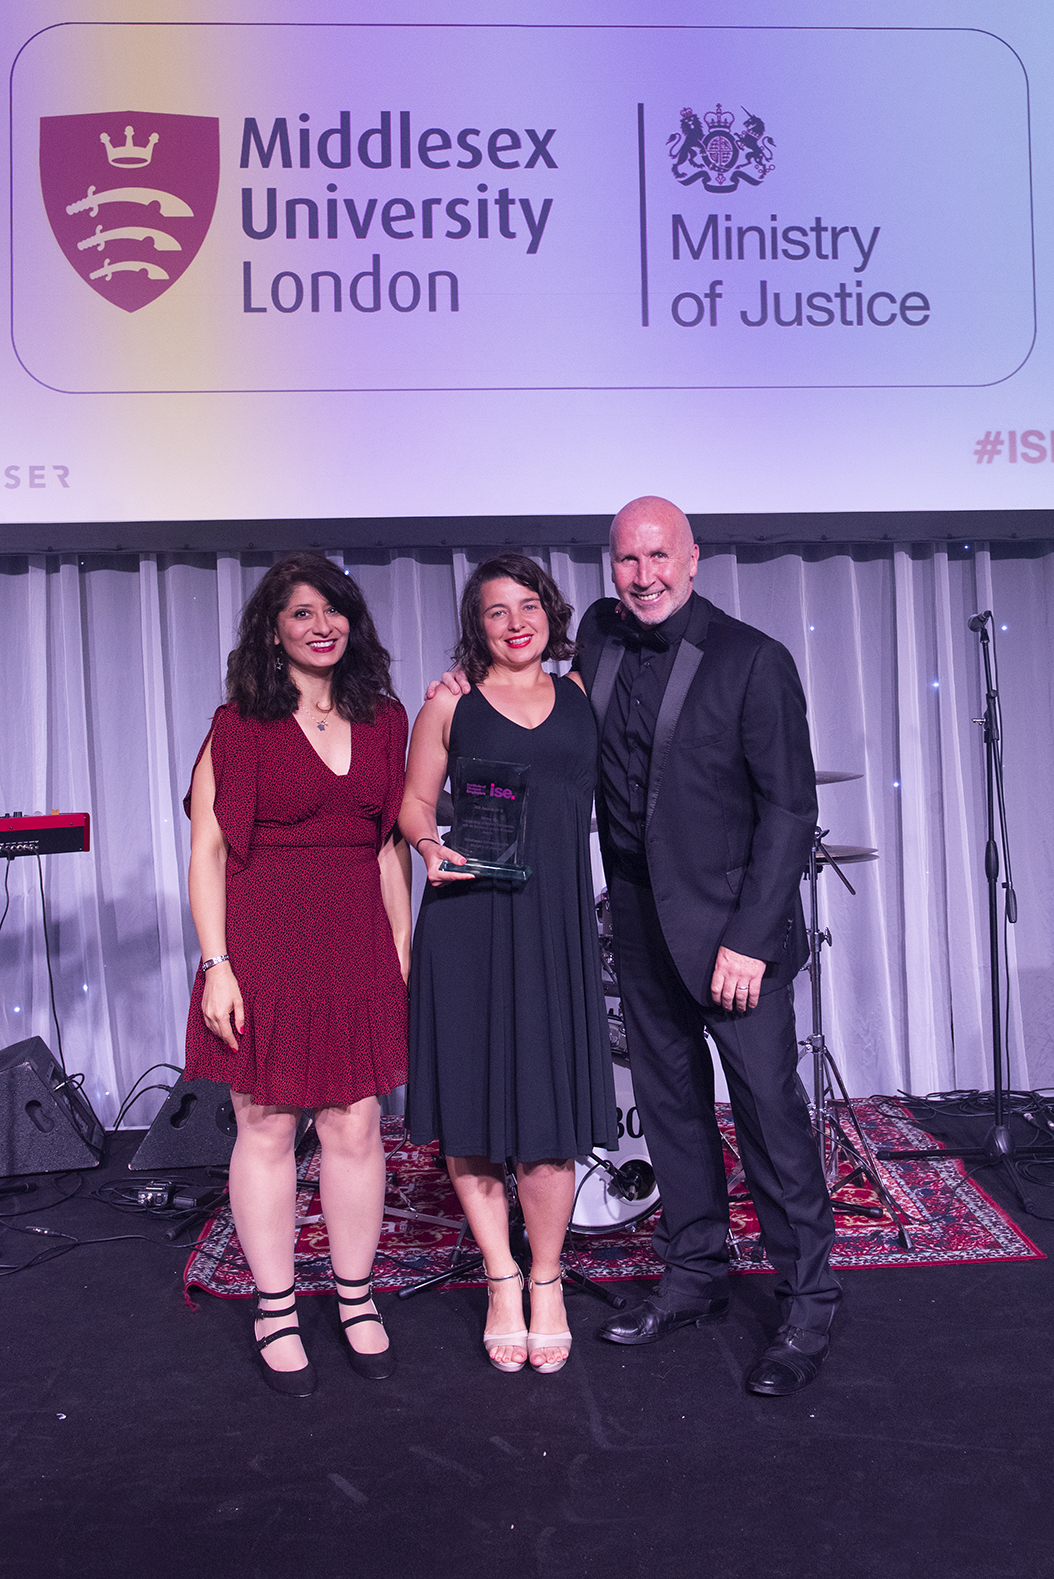 Middlesex University with Ministry of Justice